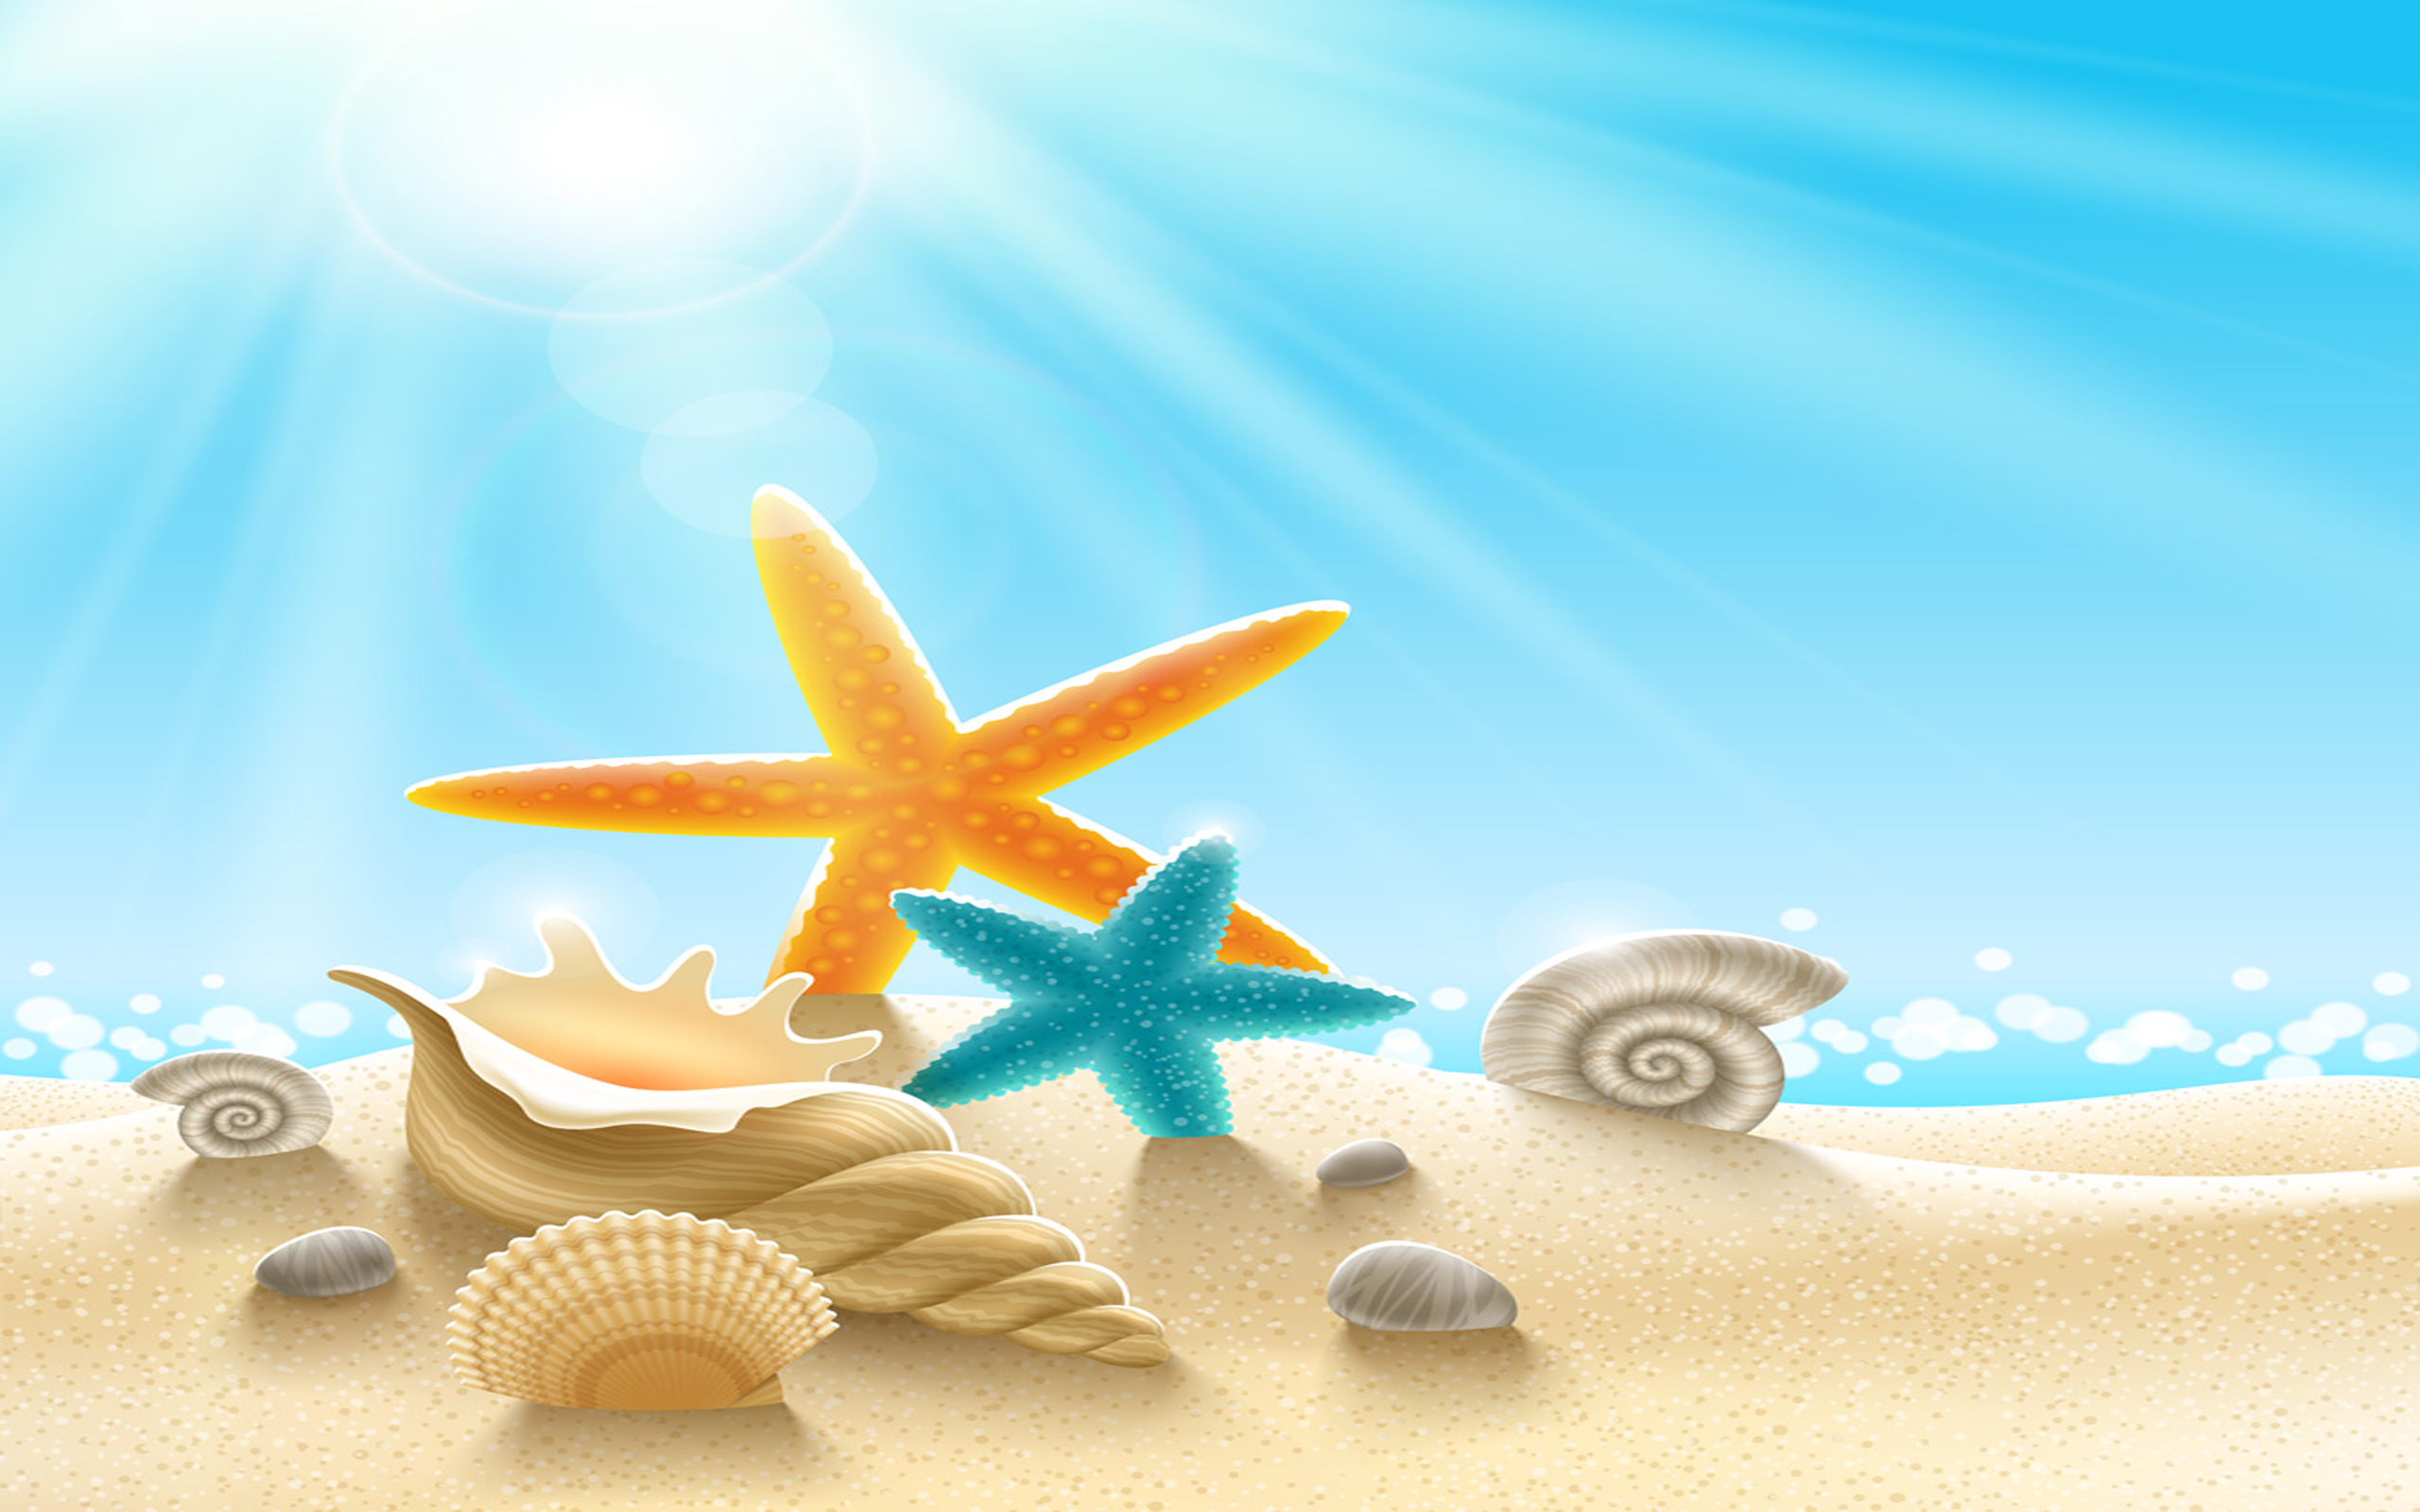 Orchid Iphone Wallpaper Underwater World Sea Stars Clams Snails Sand Sunlight